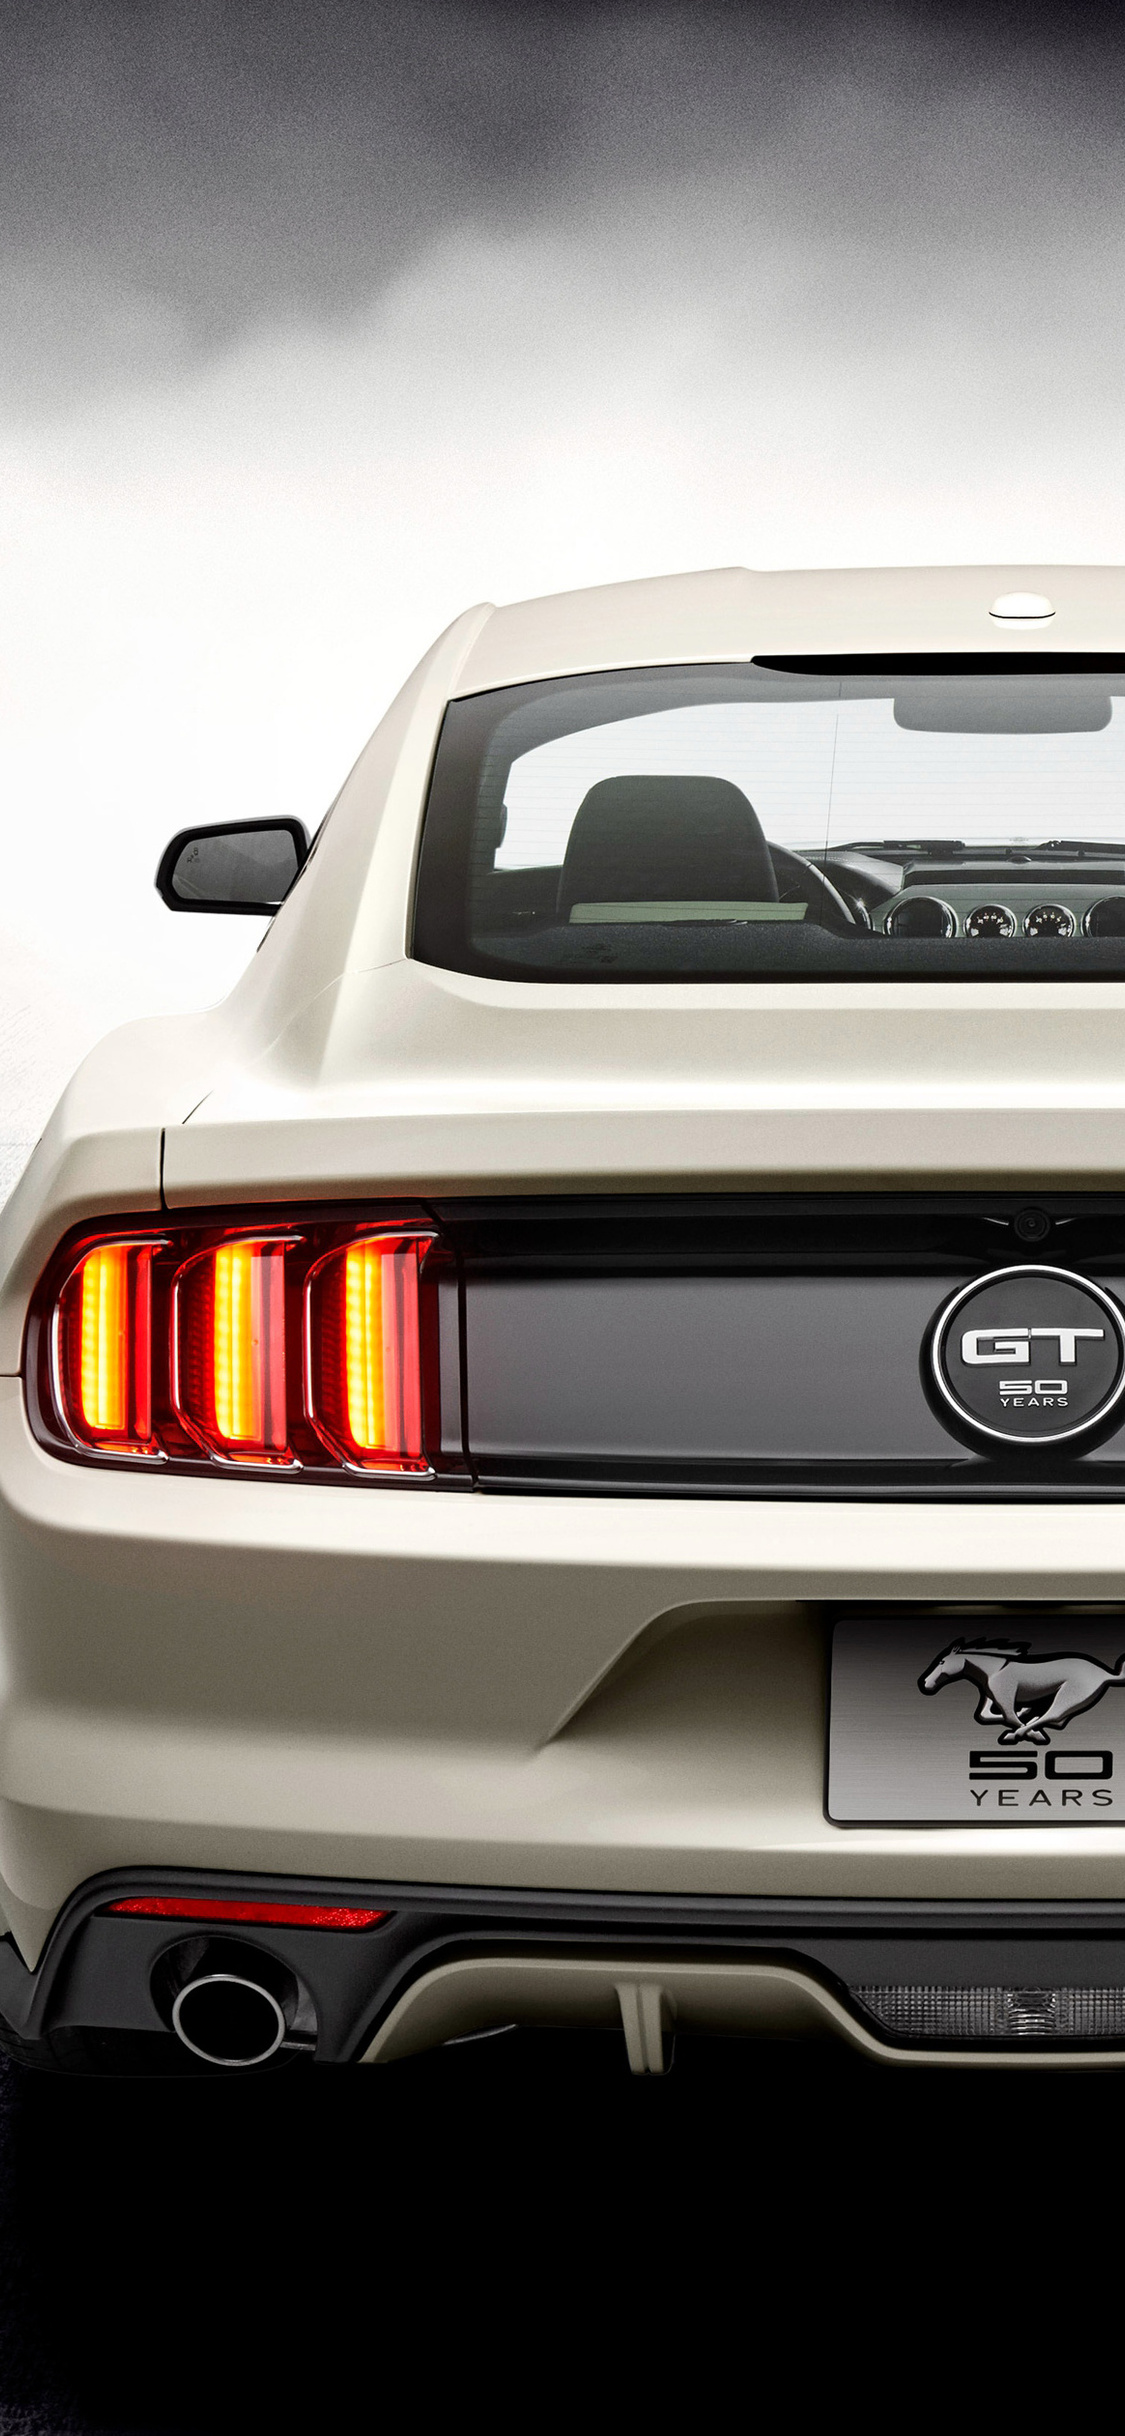 Ford Mustang Iphone Wallpaper